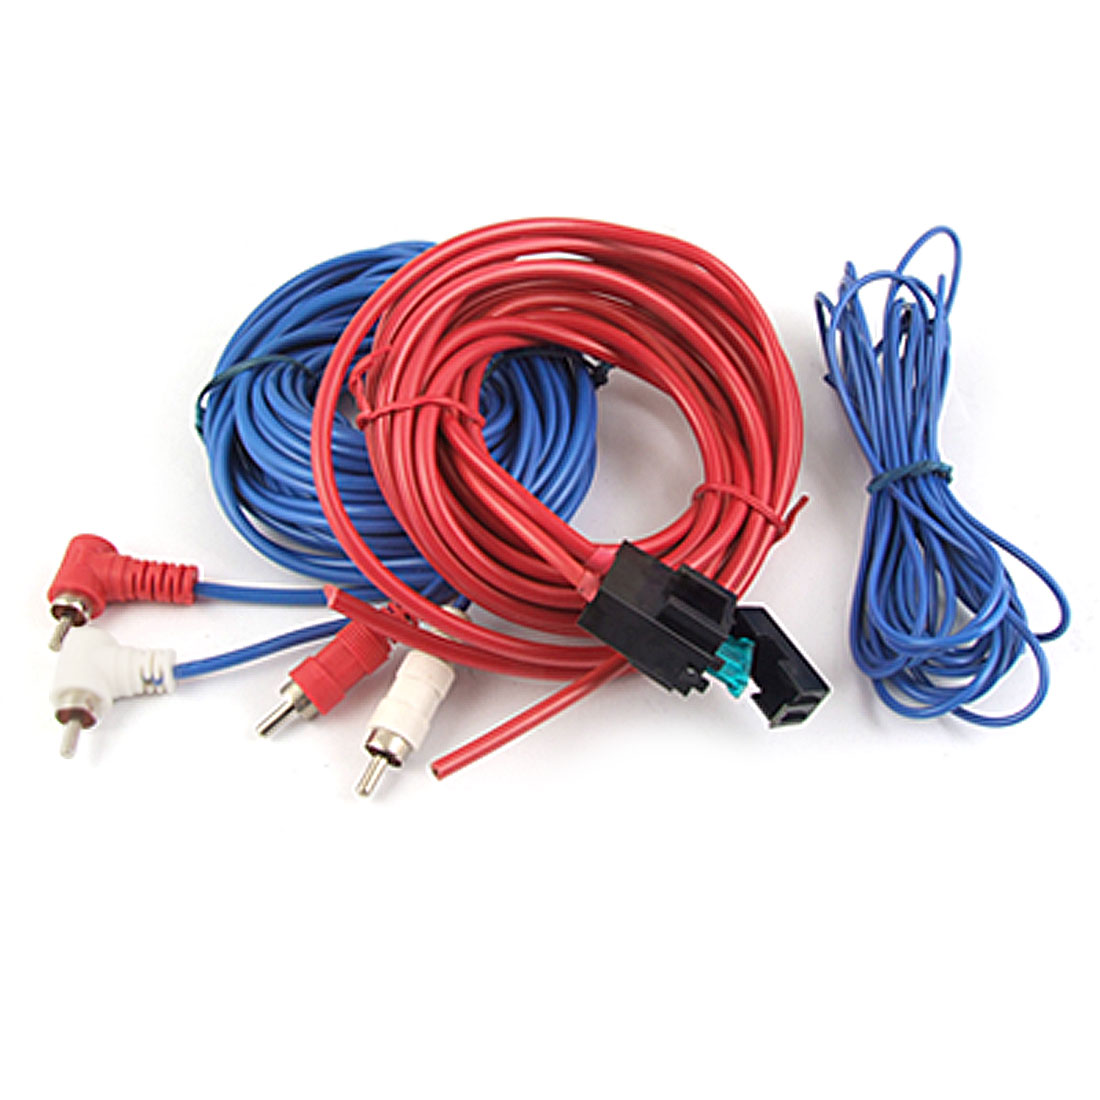 Car Audio Wiring Kit Walmart Great Installation Of Diagram Stereo Harness Unique Bargains Fuse Holder Power Cable Amplifier Rh Com